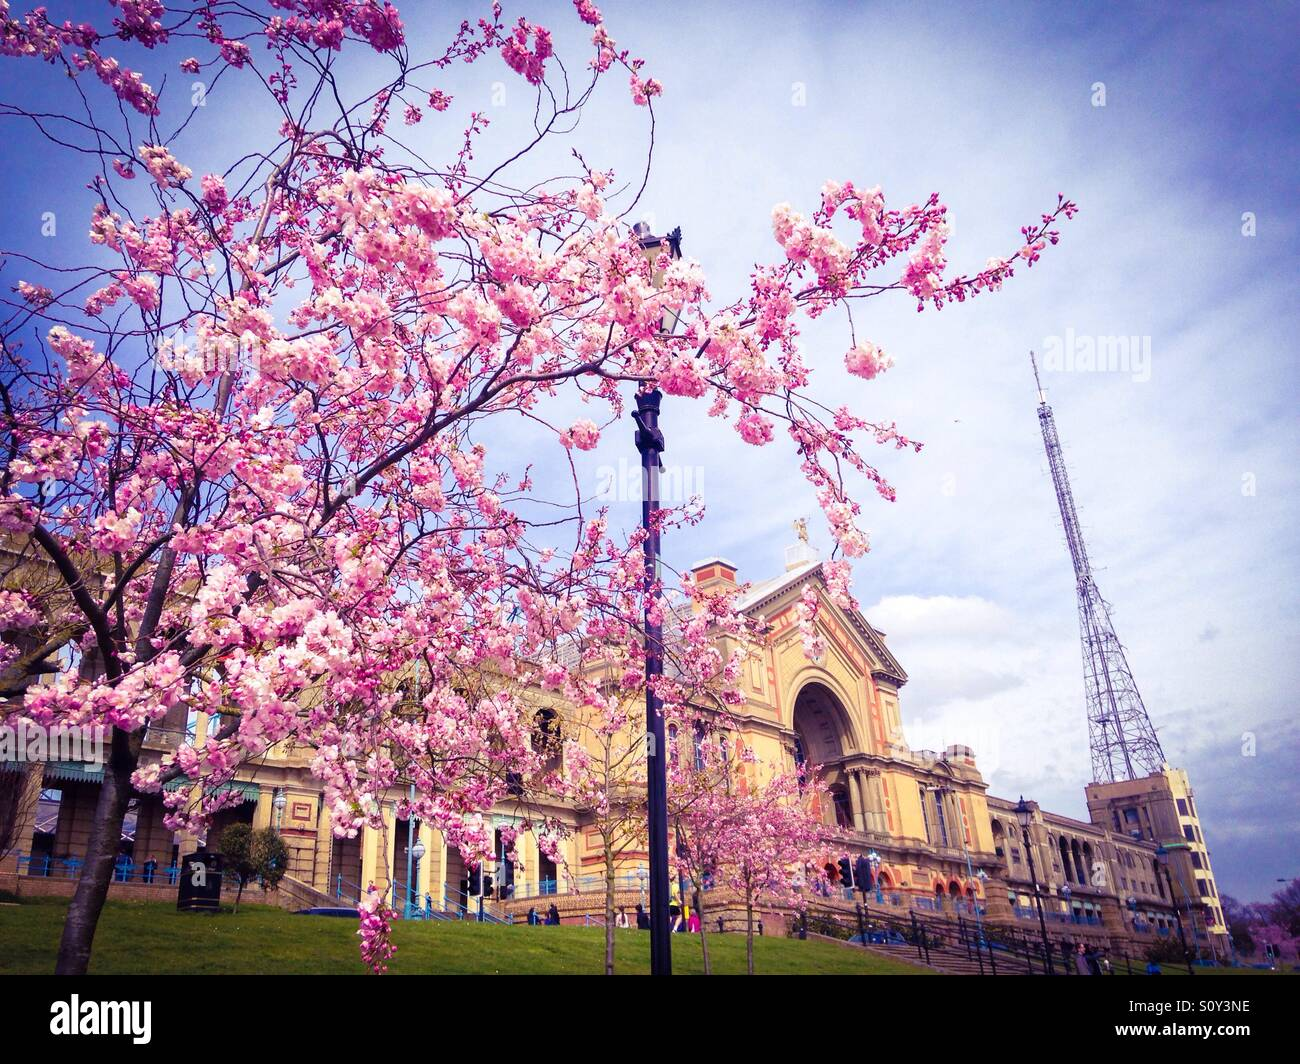 Blossom at Alexandra Palace, North London - Stock Image